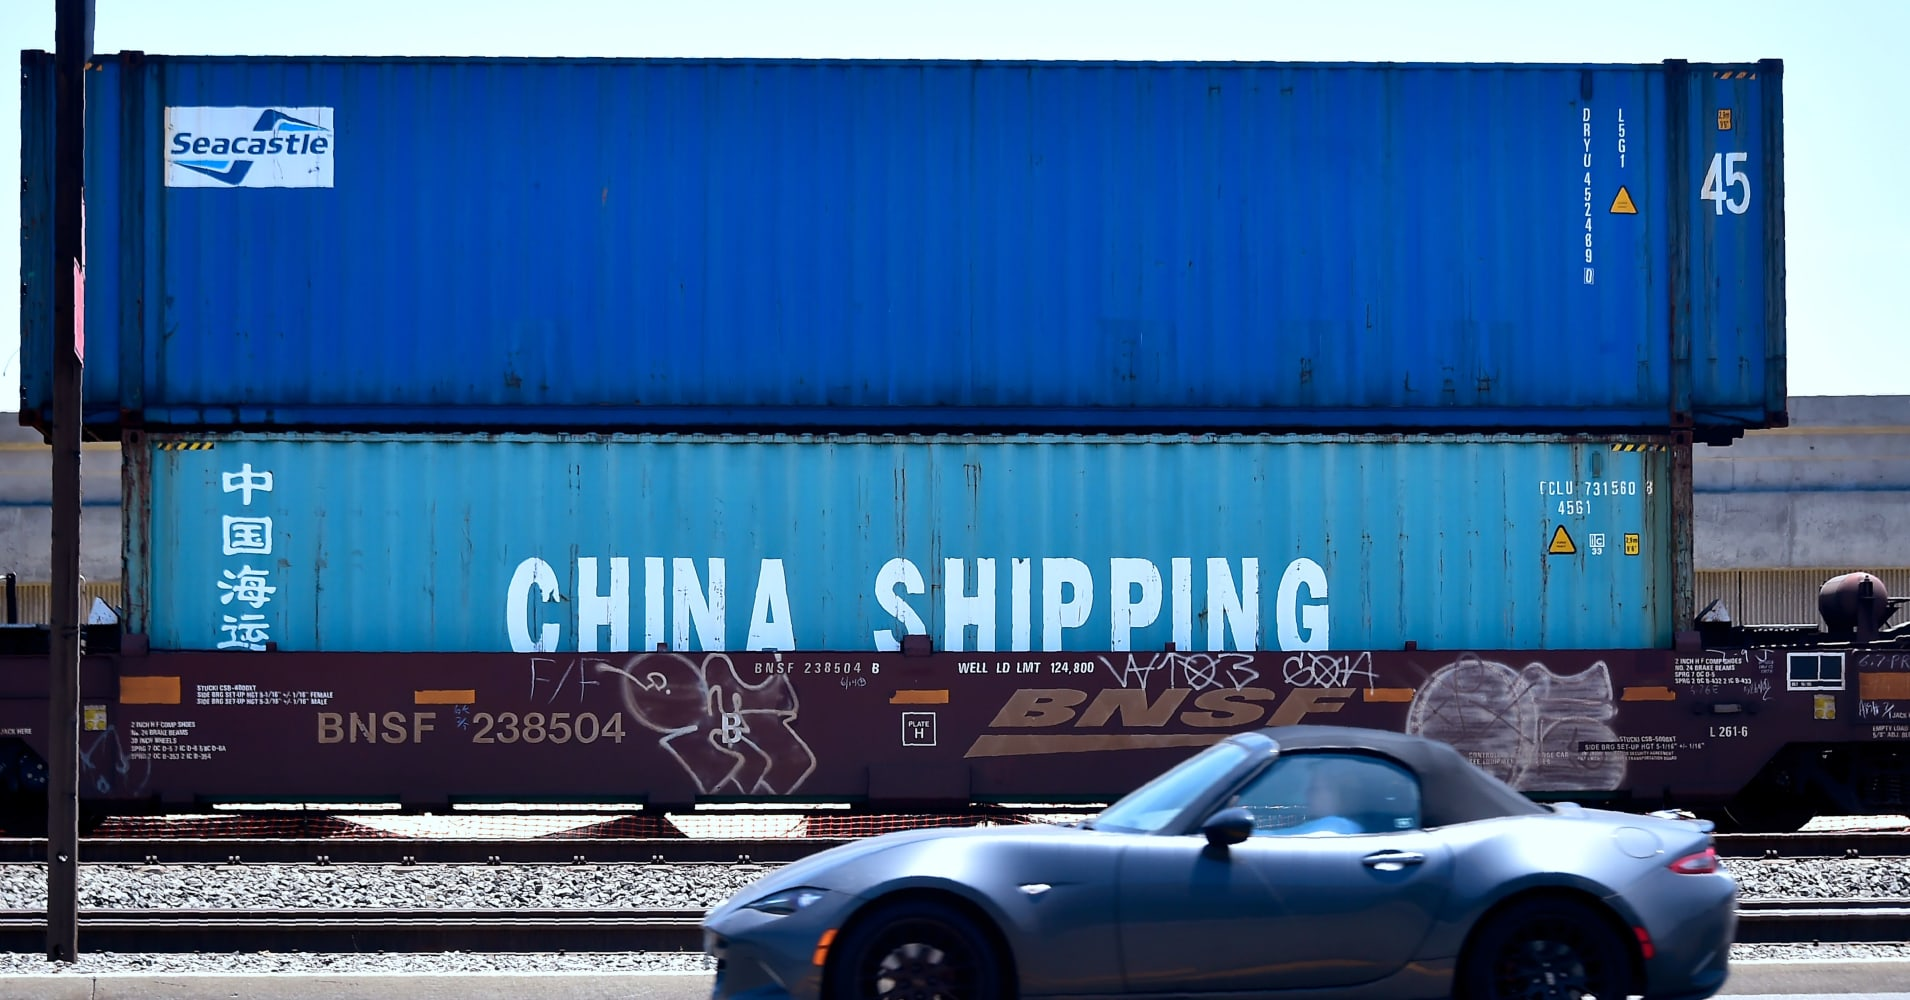 It's in China's interest to reconsider its trade surplus with the US